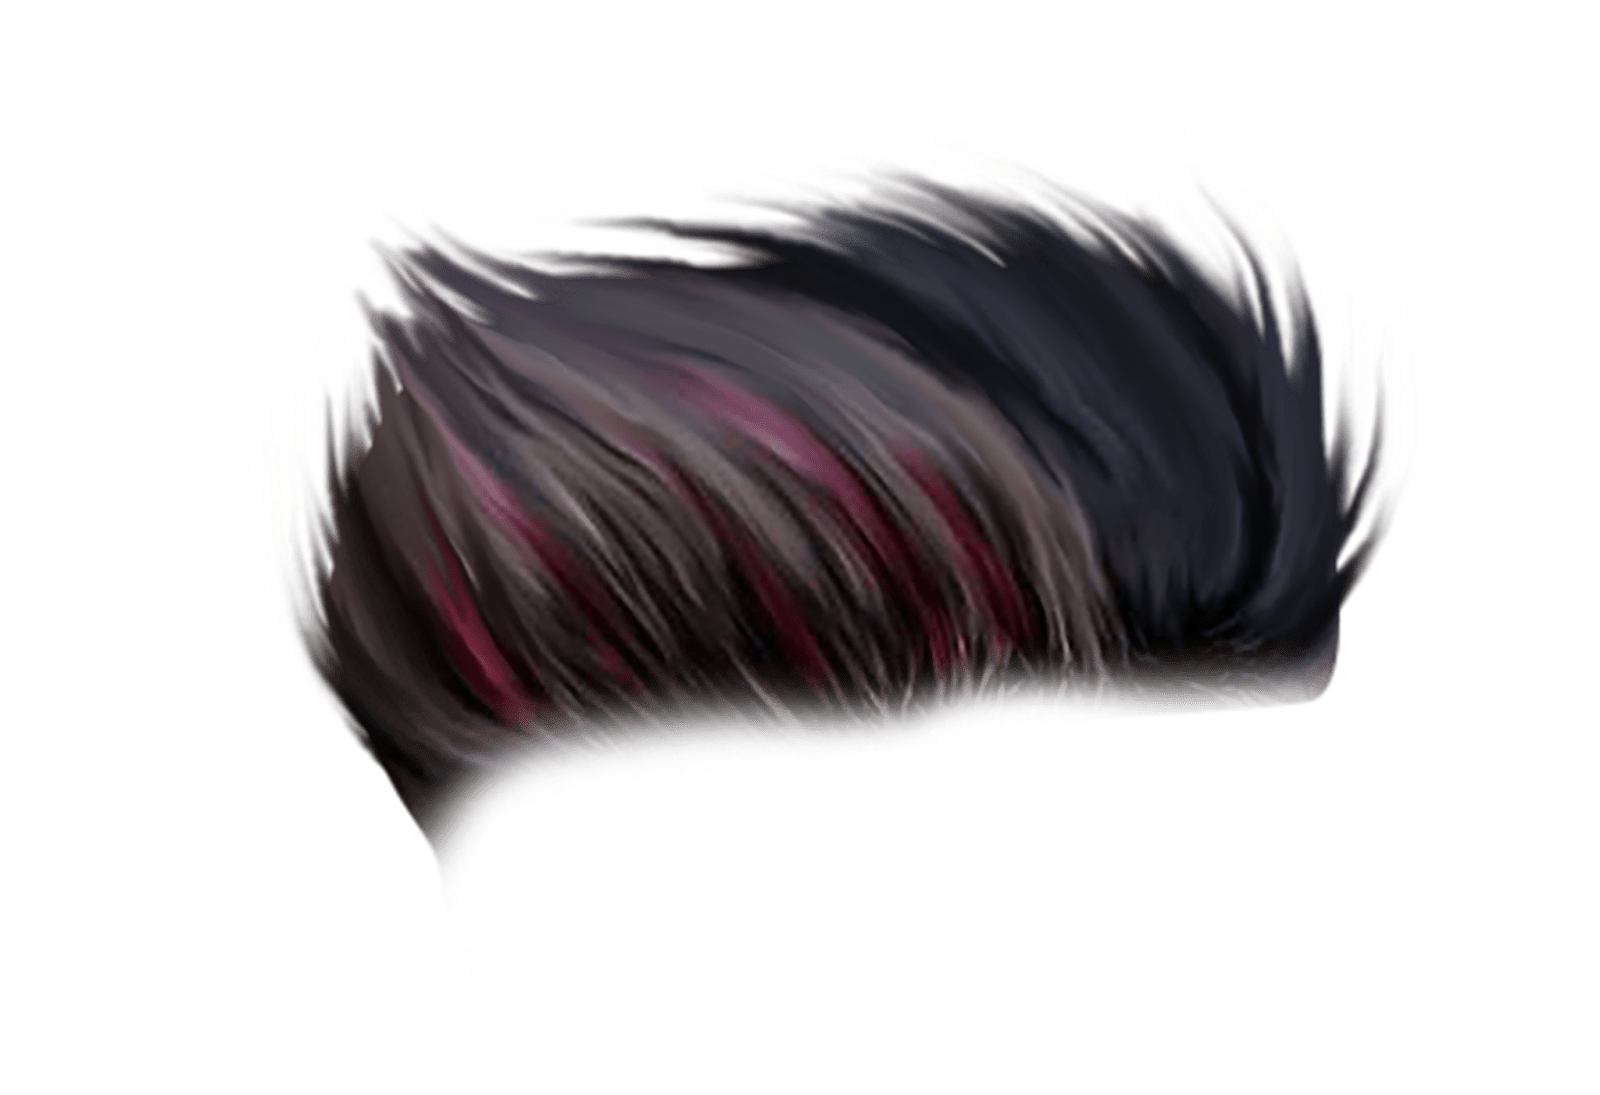 Best Hair Png For Editing Top 10 Hair Style Png For Man Hd Hair